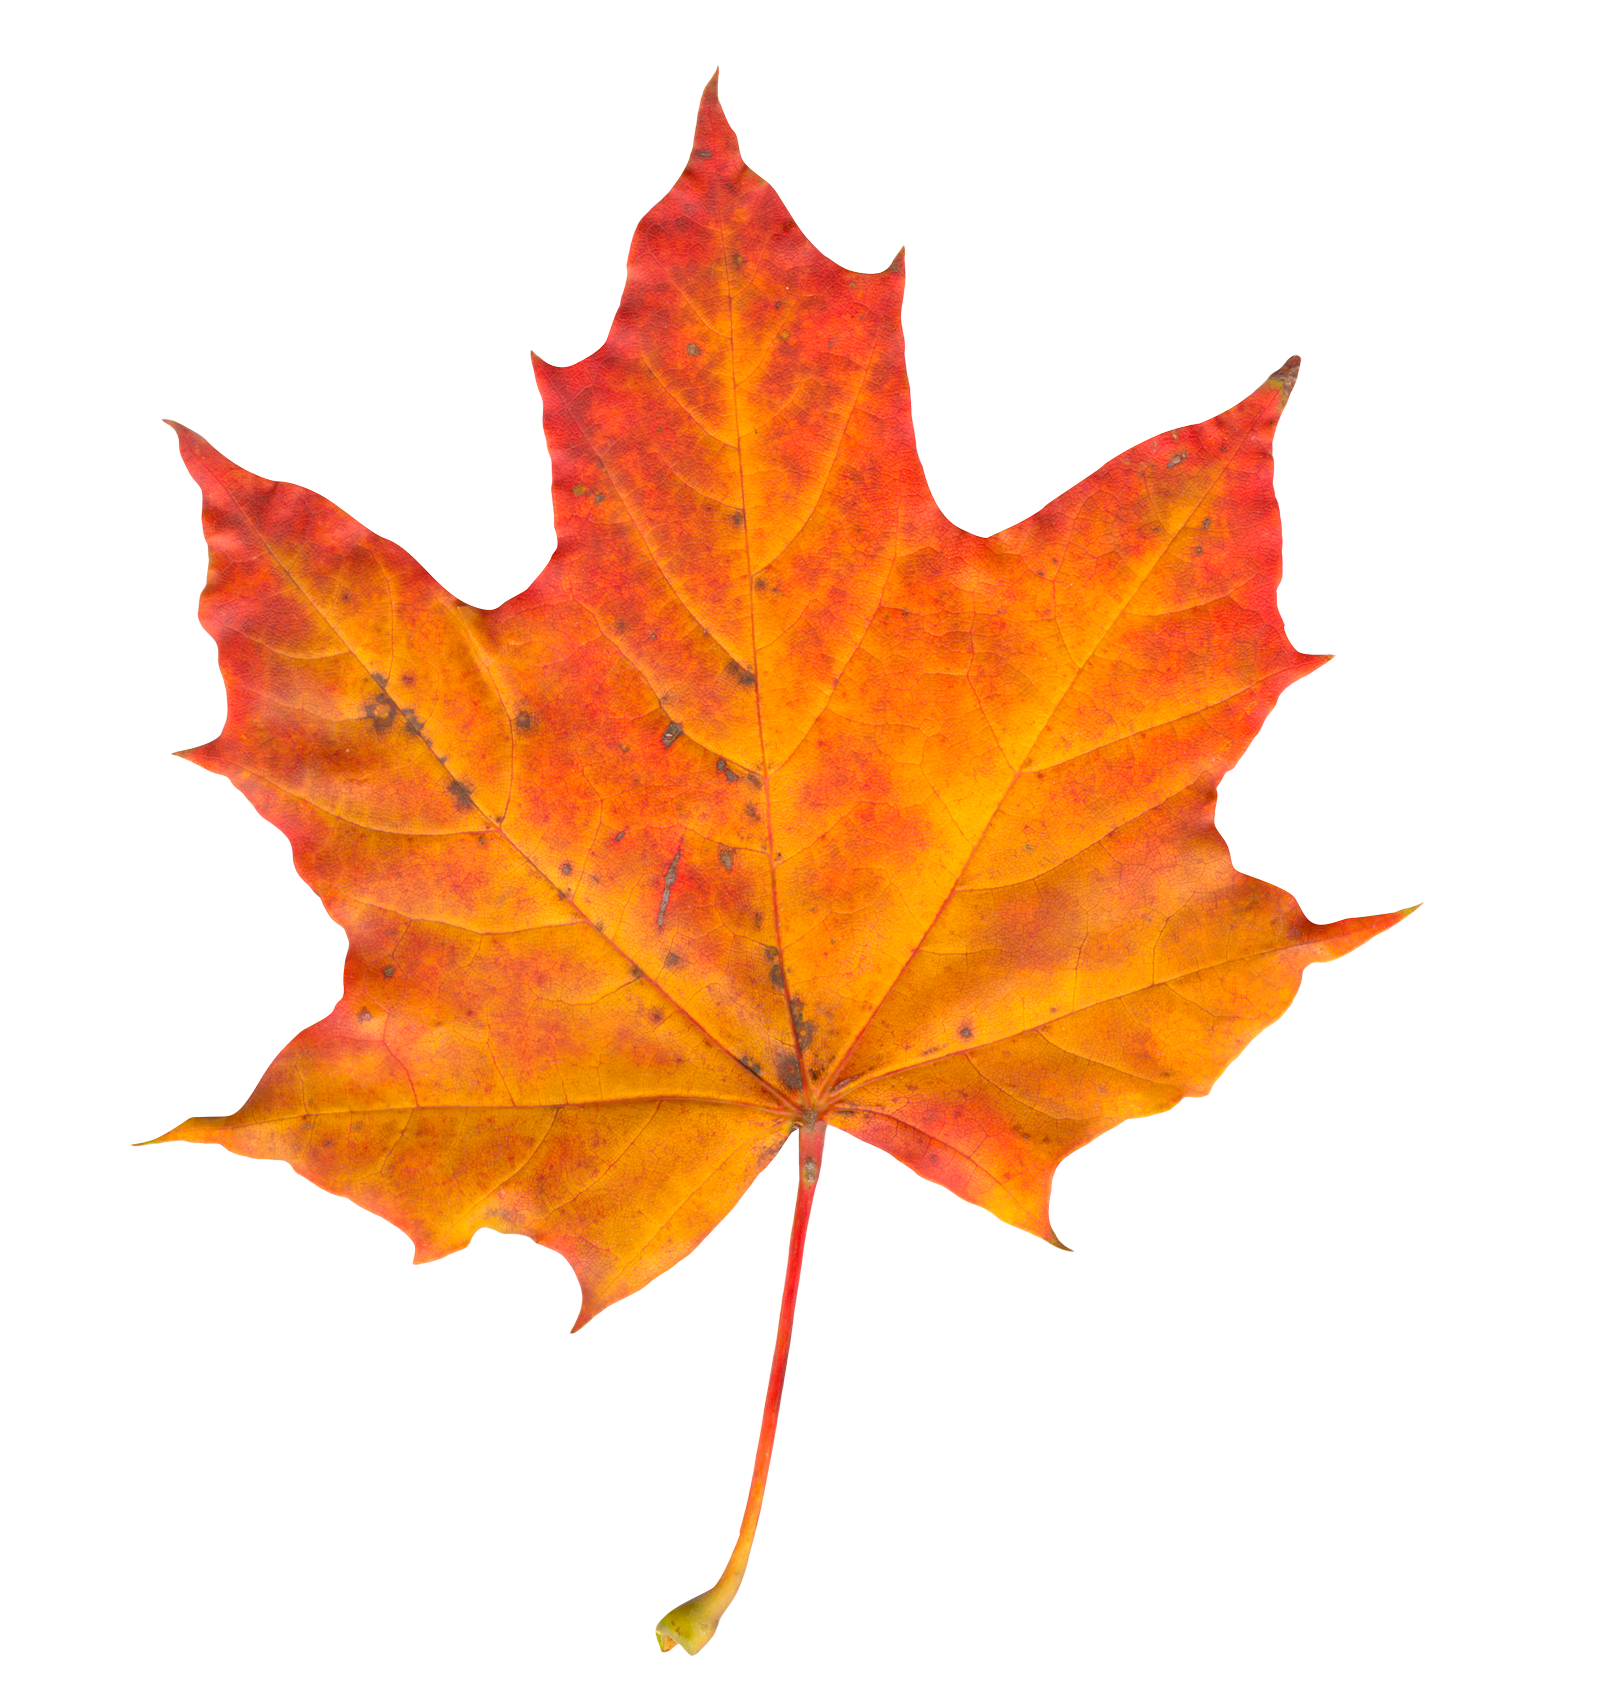 Autumn Leaf Png Image Autumn Leaves Leaves Watercolor Leaves